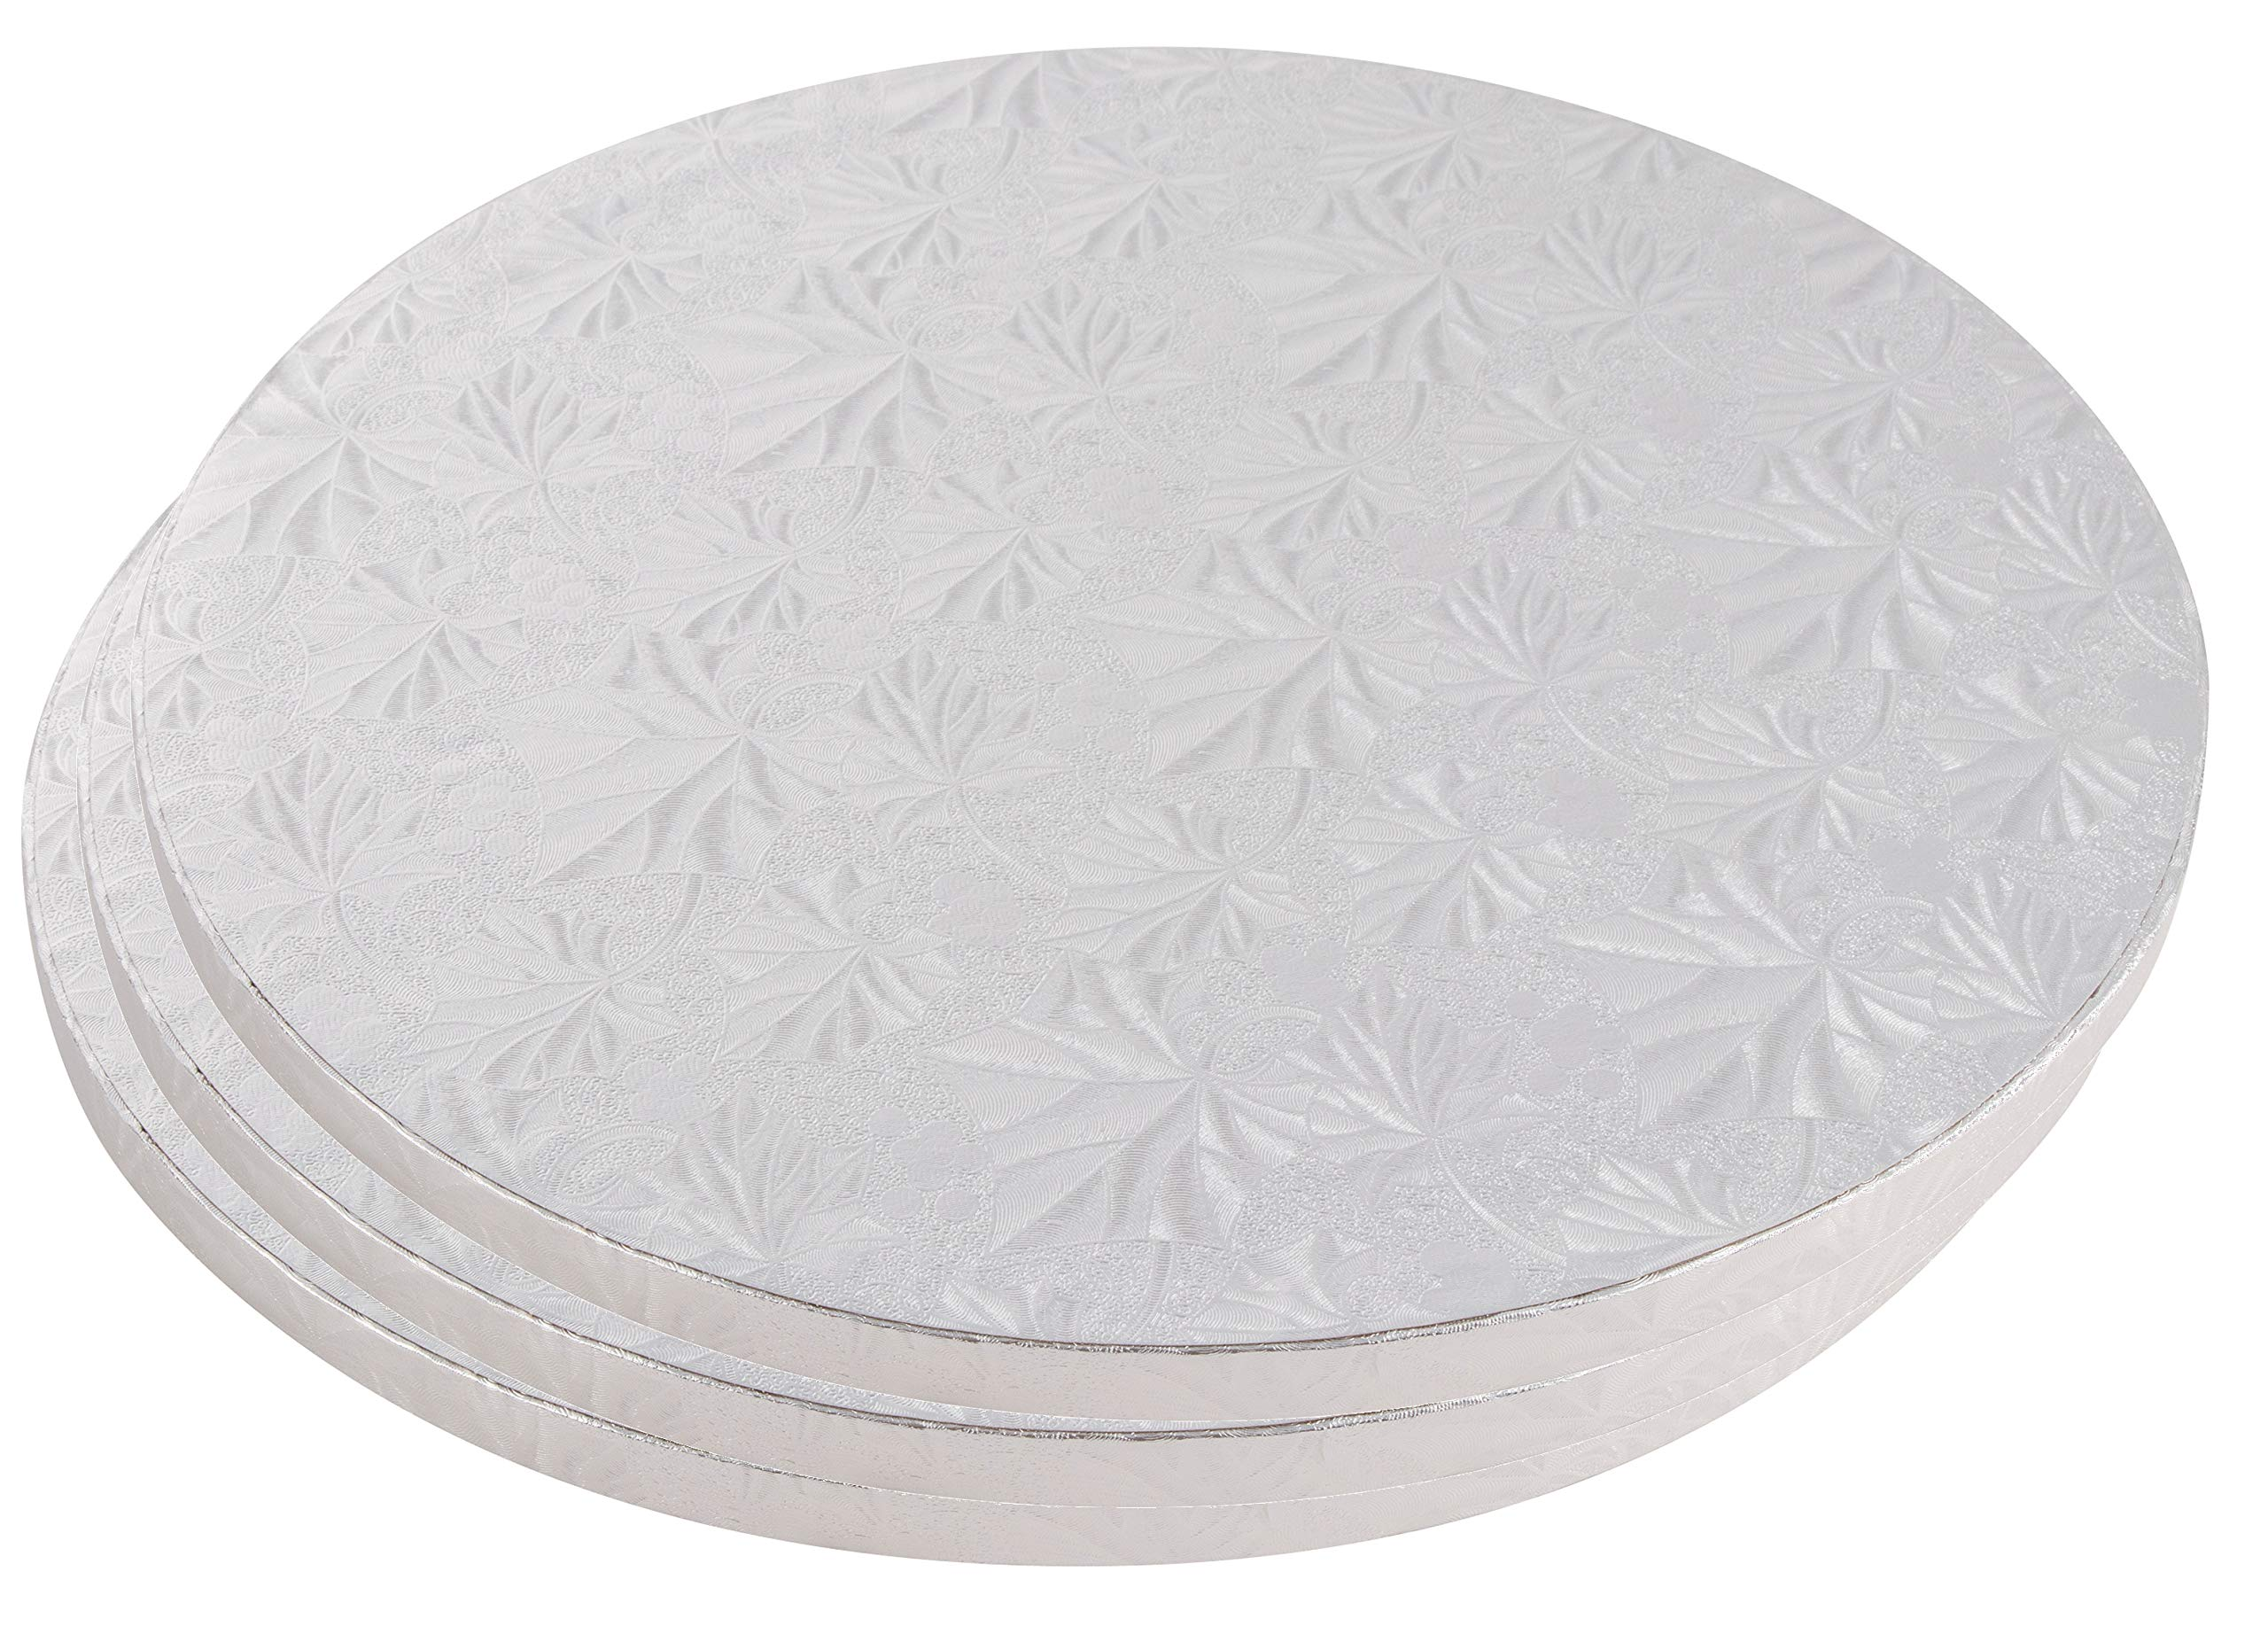 Cake Boards Rounds - 3 Piece Silver Foil Pizza Base Disposable Cake Drums, Corrugated Paper Board, 14 Inches in Diameter